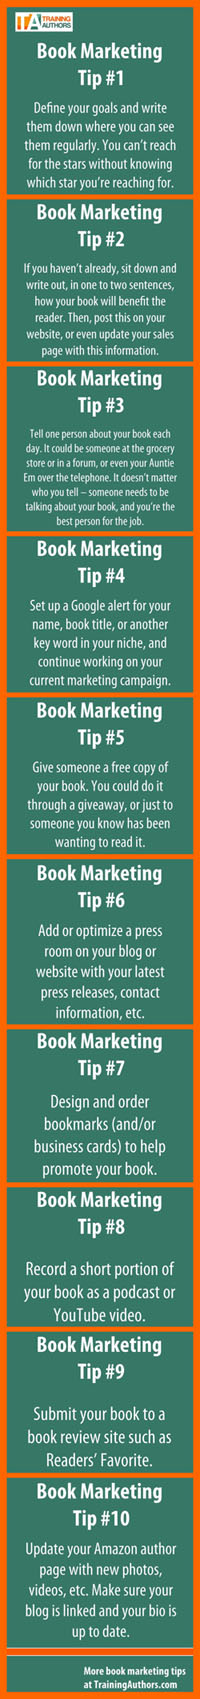 10 Book Marketing Tips plus comments from John Kremer